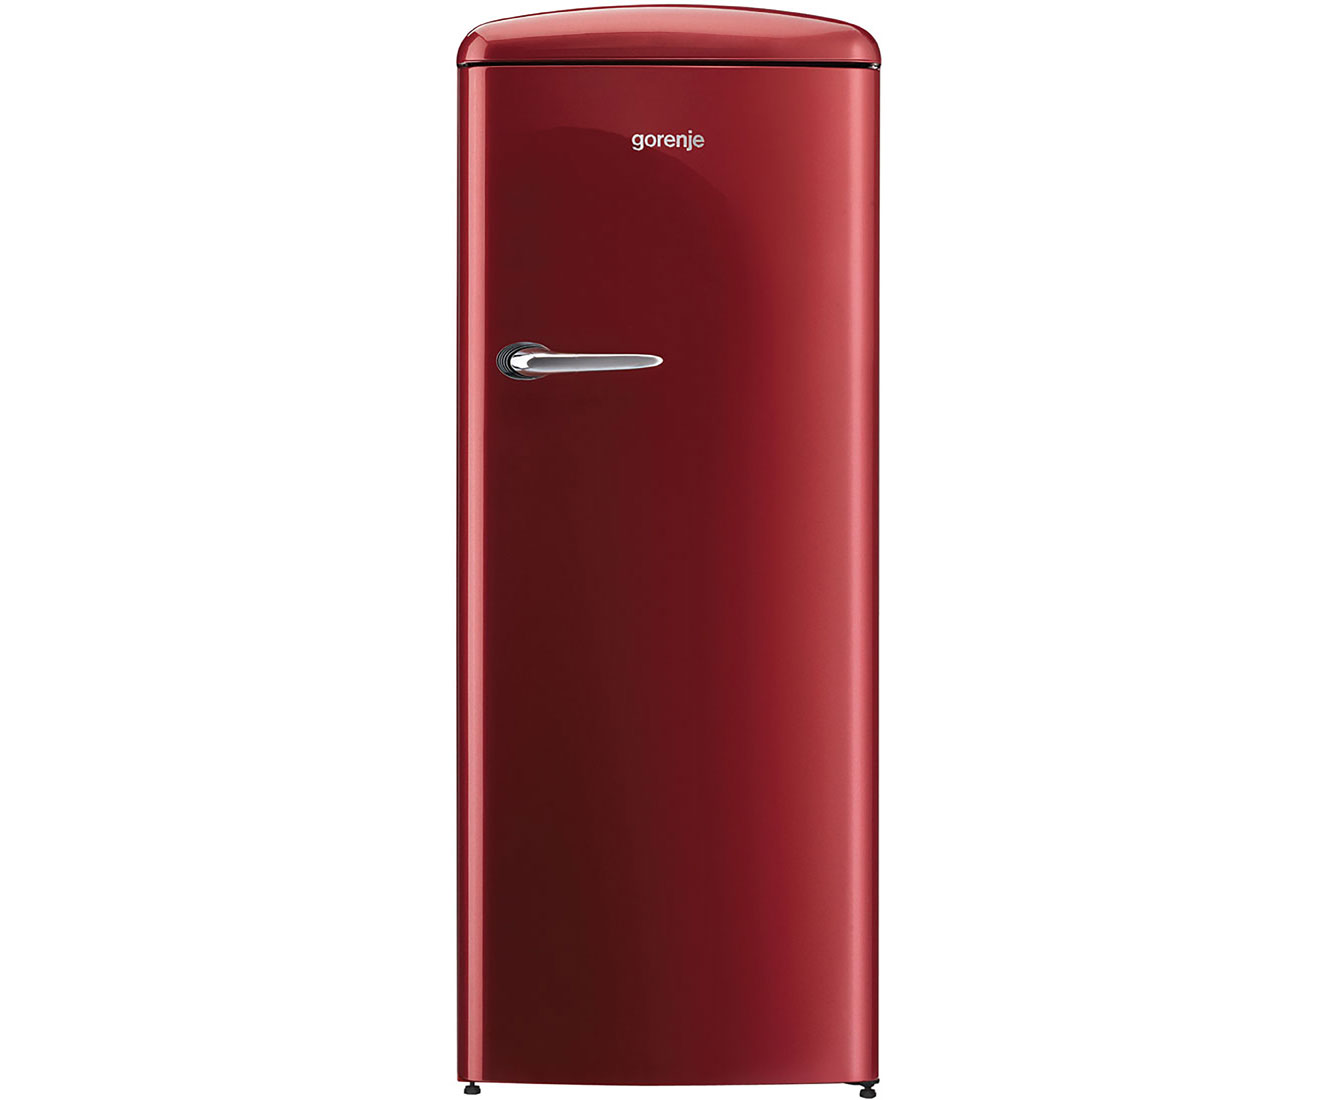 gorenje orb 153 r retro collection k hlschrank freistehend 60cm bordeaux rot ebay. Black Bedroom Furniture Sets. Home Design Ideas